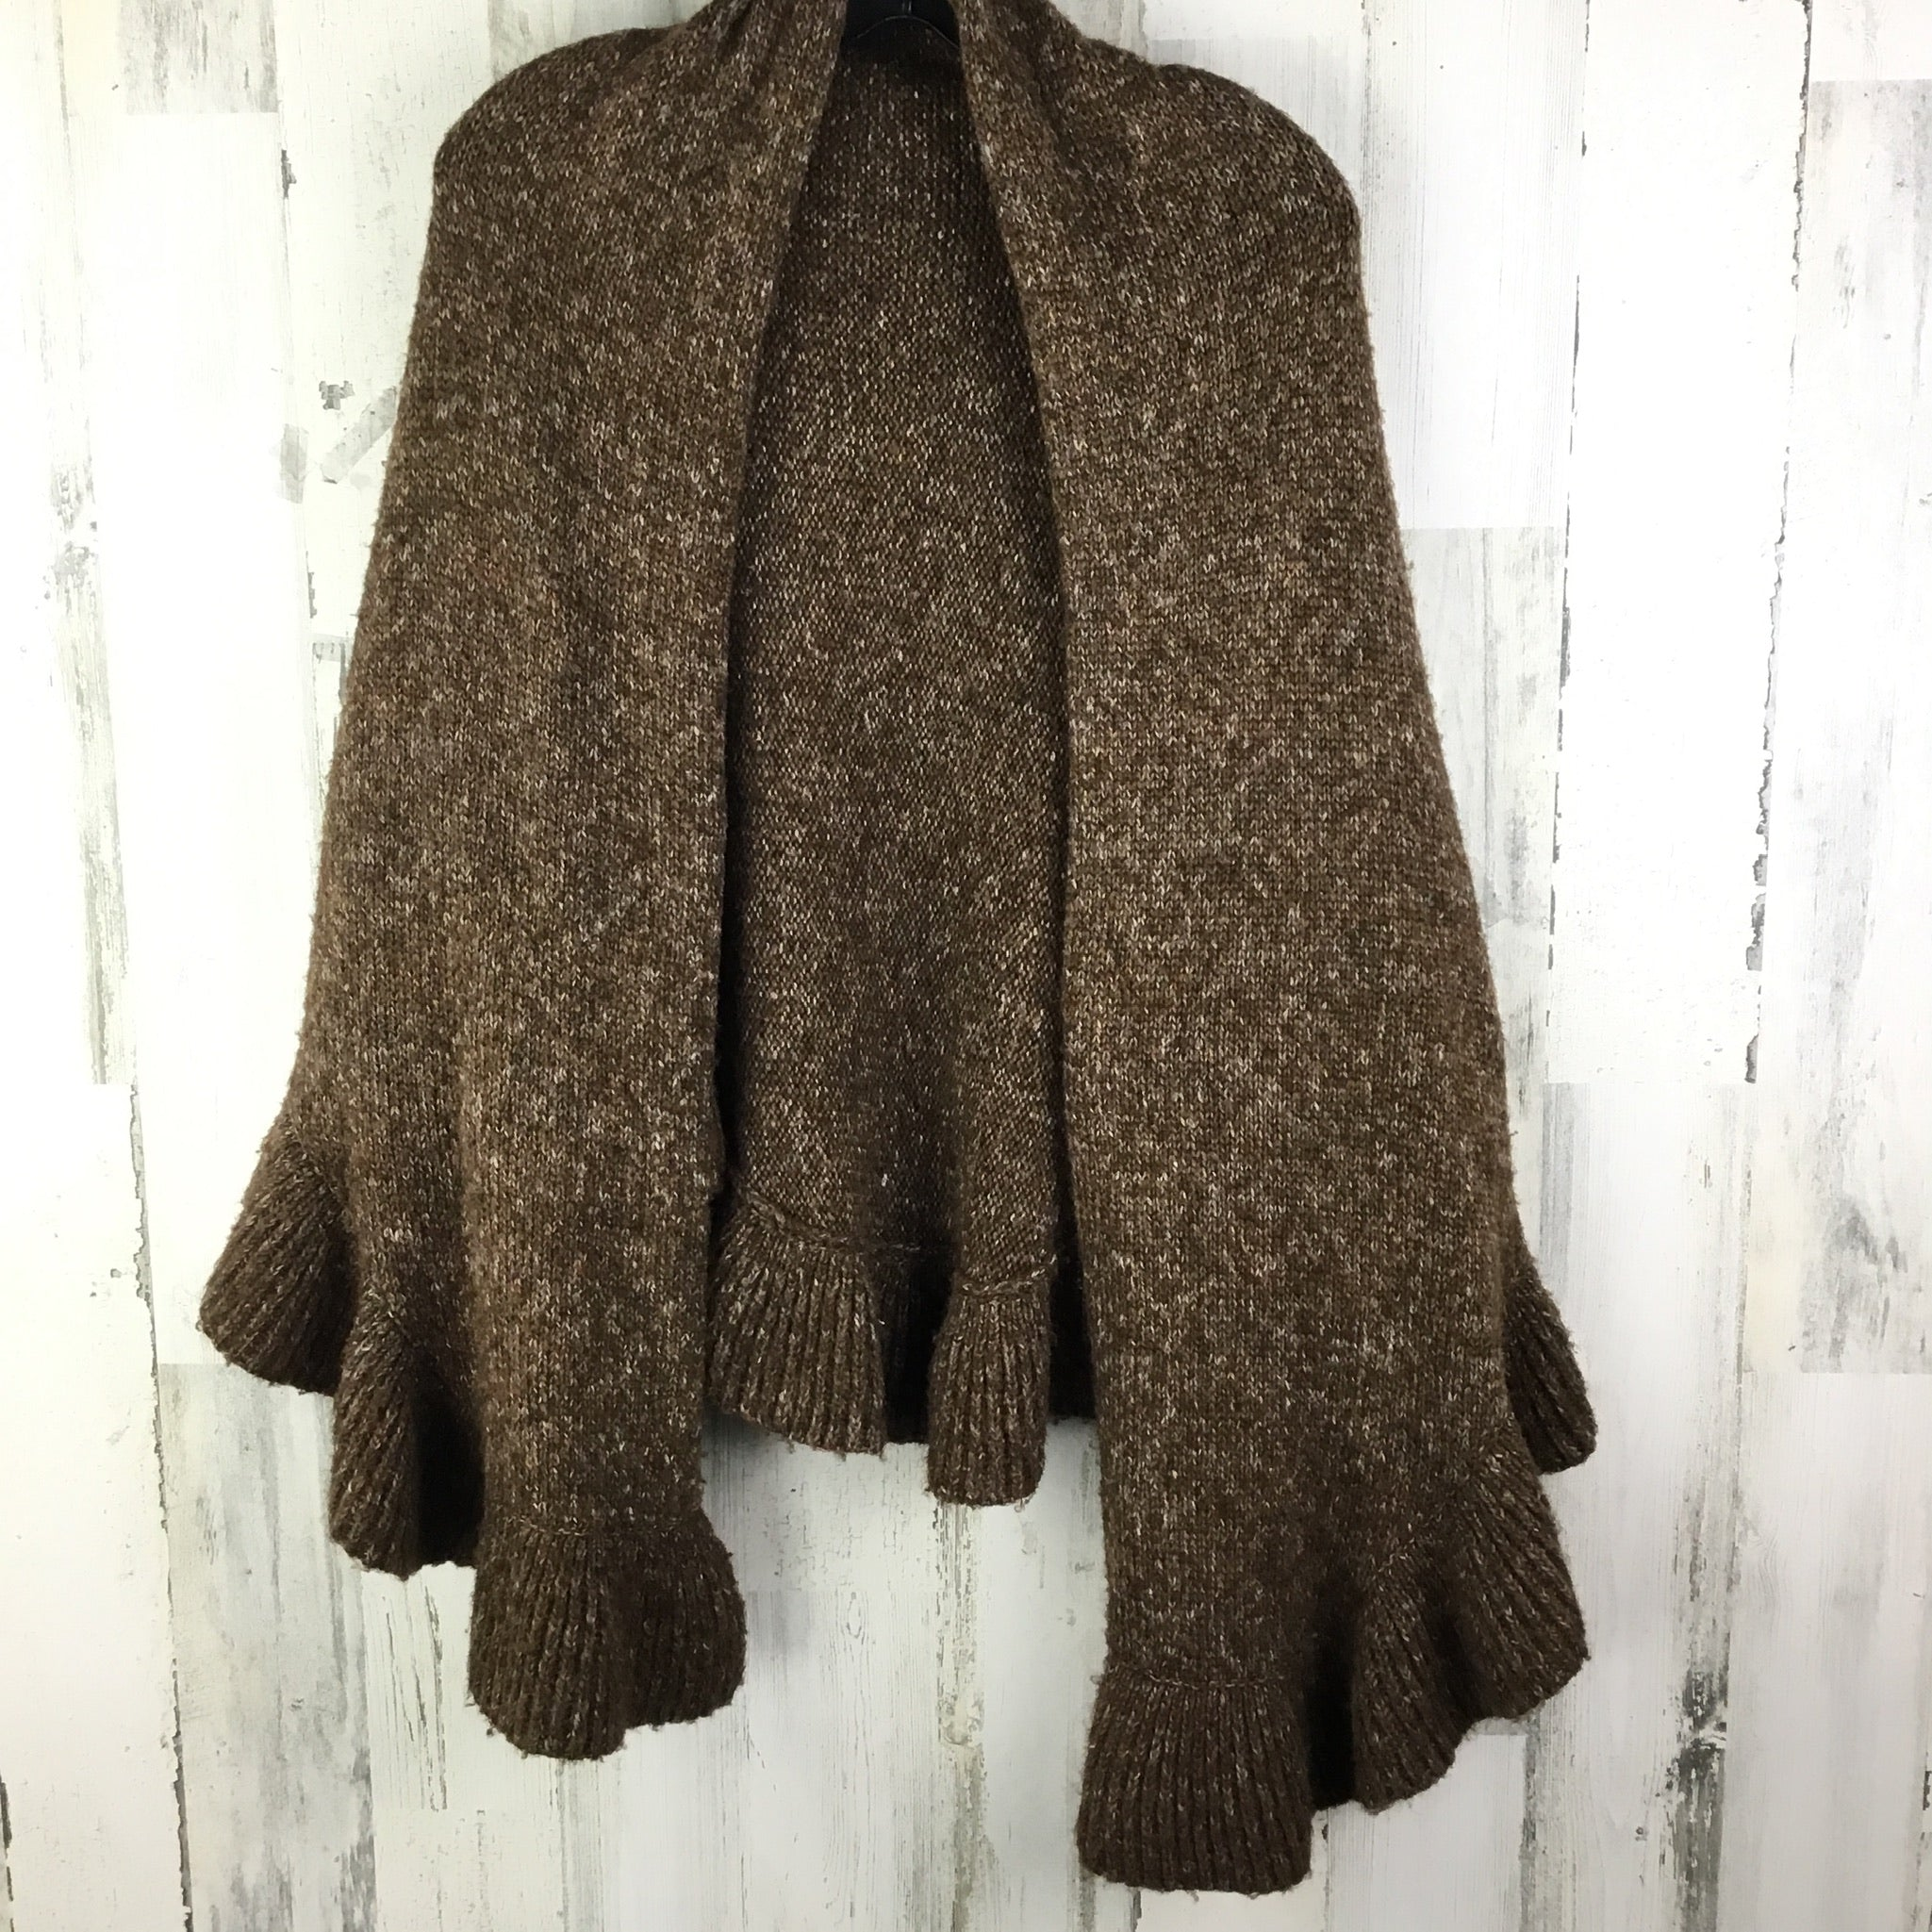 Primary Photo - BRAND: CABI <BR>STYLE: SHAWL <BR>COLOR: BROWN <BR>SIZE: ONESIZE <BR>OTHER INFO: KNITTED <BR>SKU: 258-25885-27165